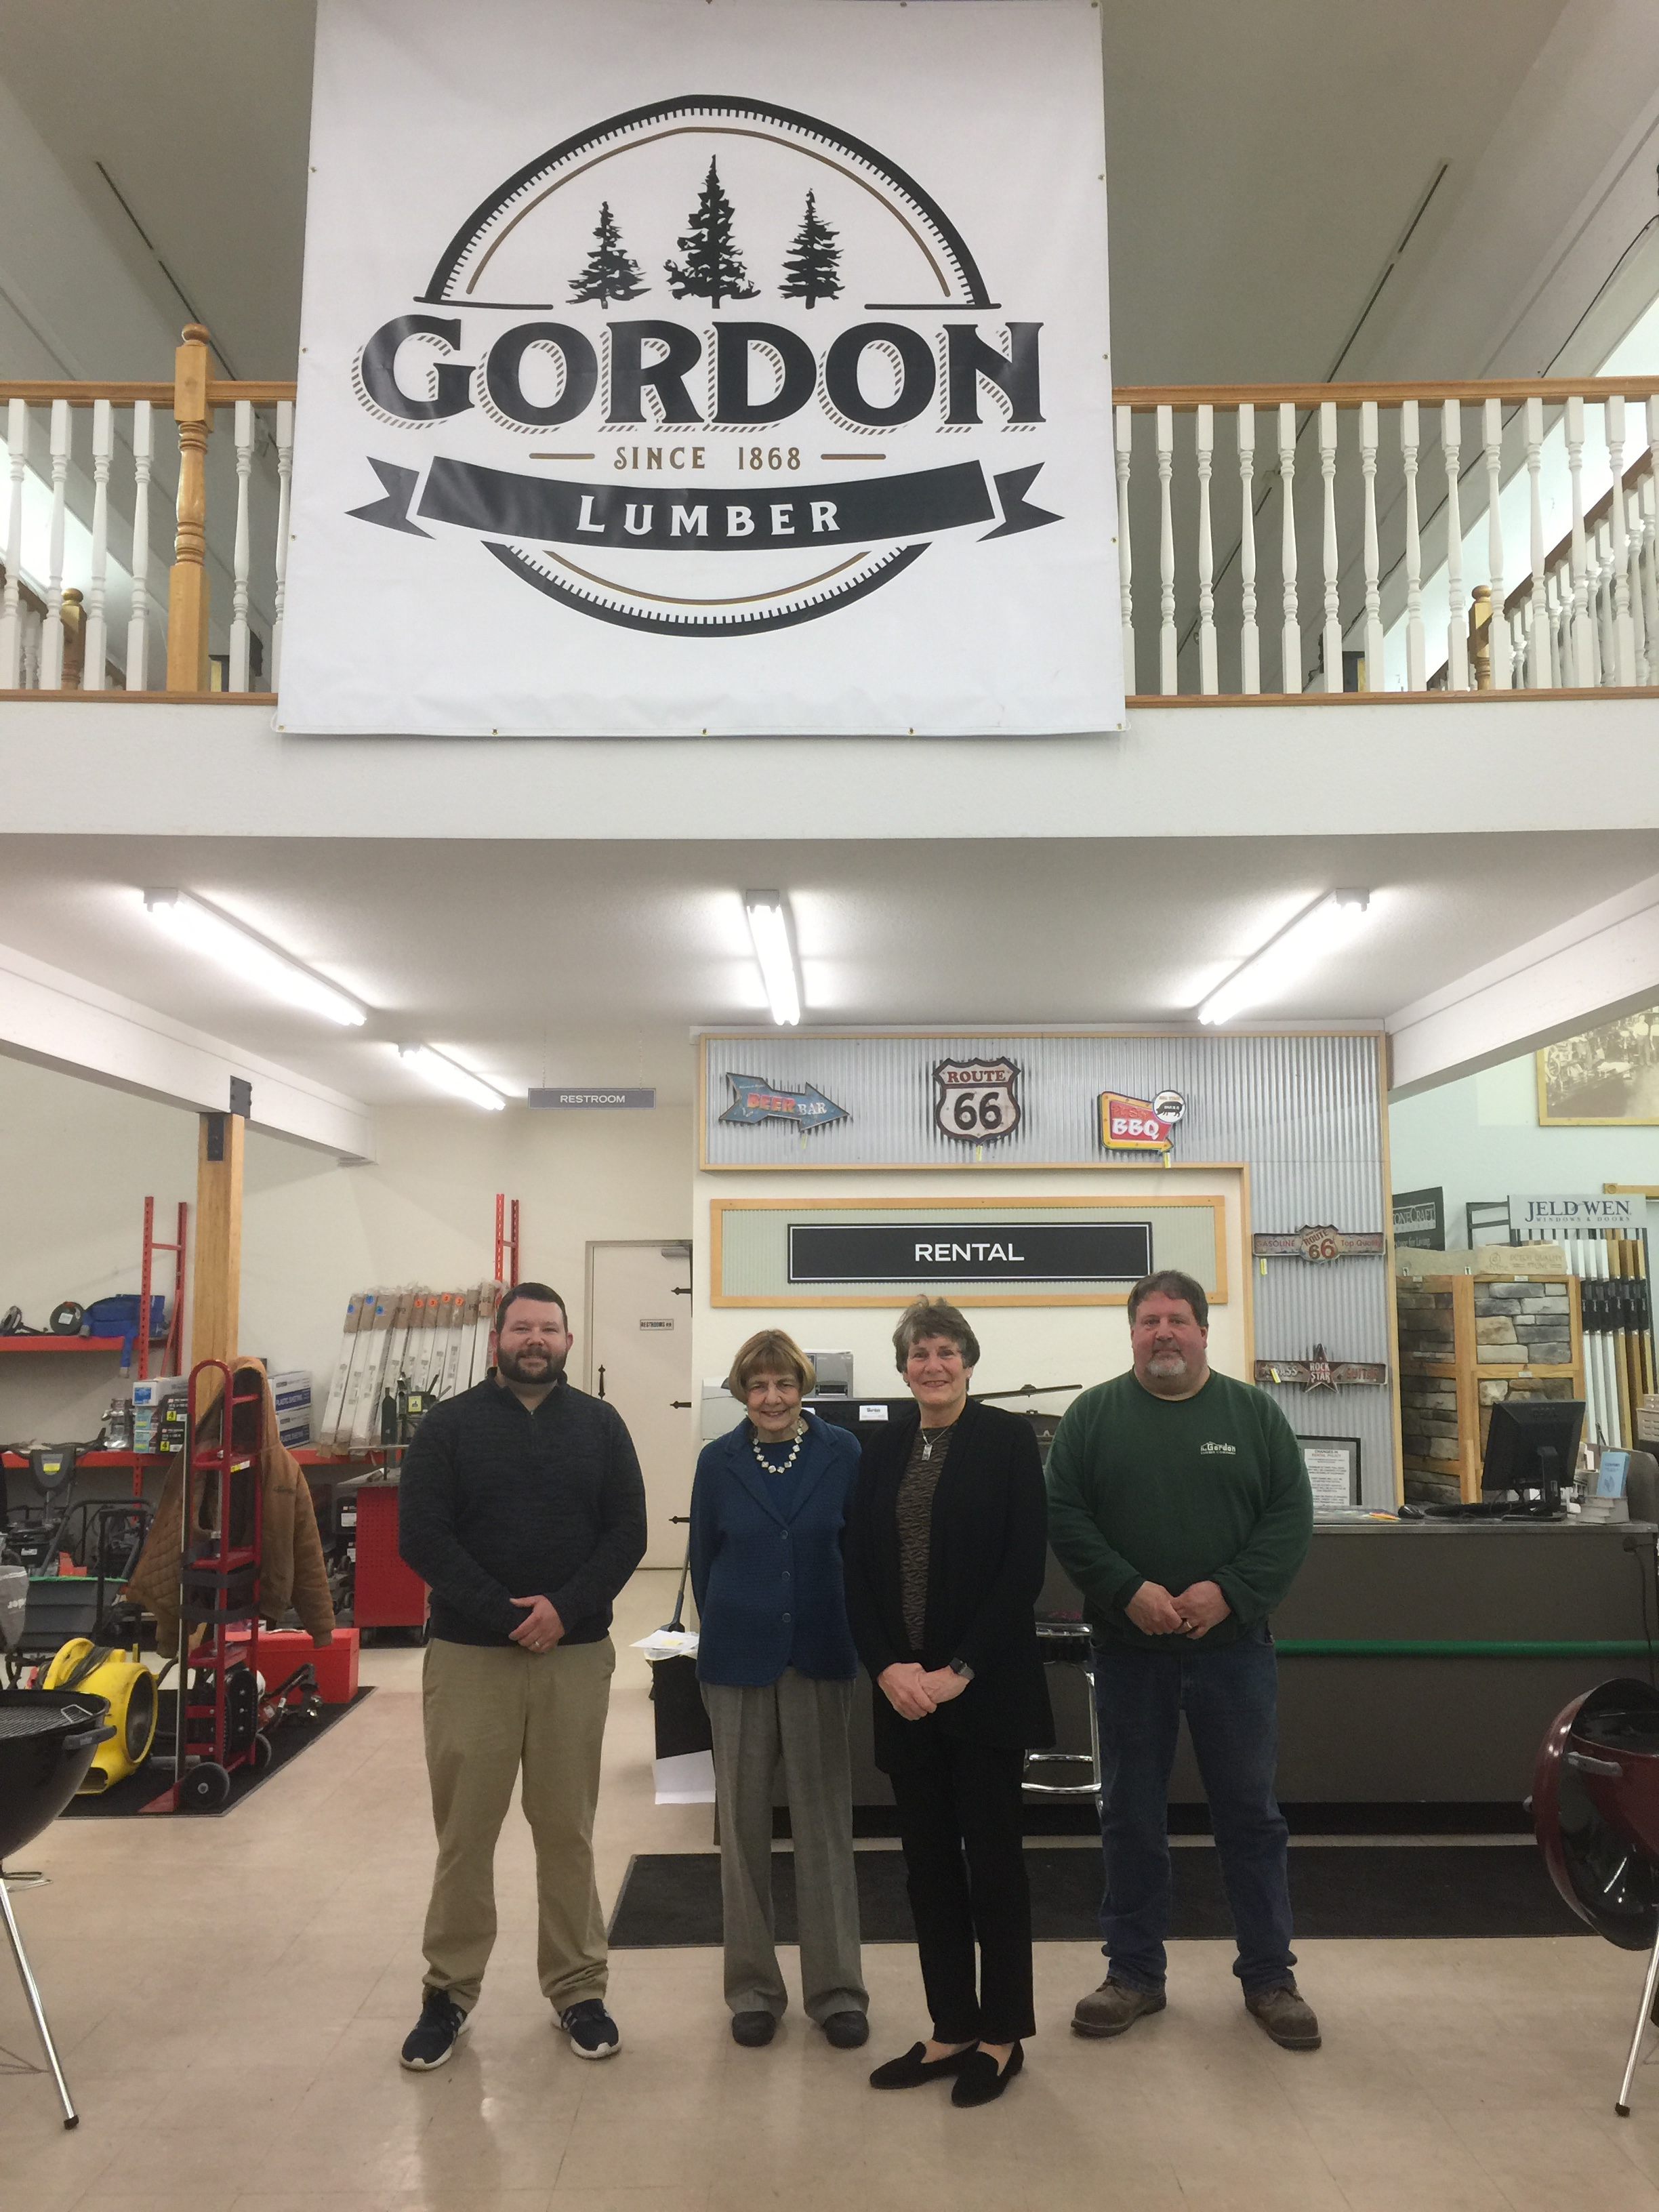 Great-Great-Granddaughters of Gordon Lumber Founder Share Family Insights on Business